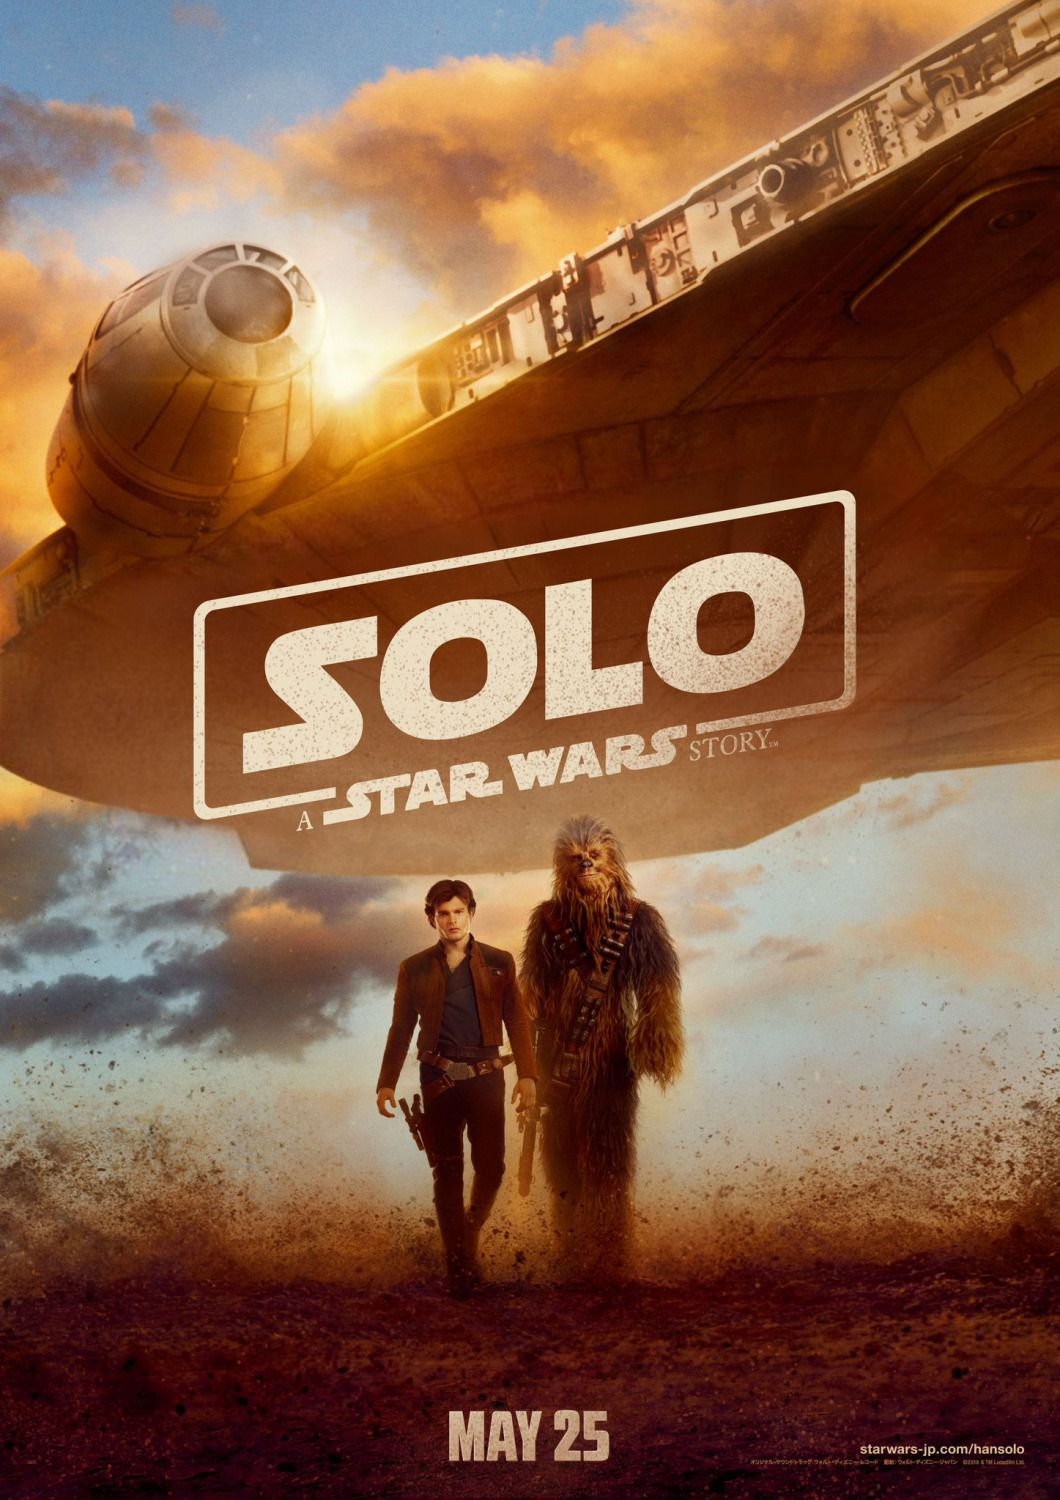 Solo a Star Wars Story by Ron Howard - Alden Ehrenreich, Donald Glover, Emilia Clarke, Woody Harrelson - film poster 2018